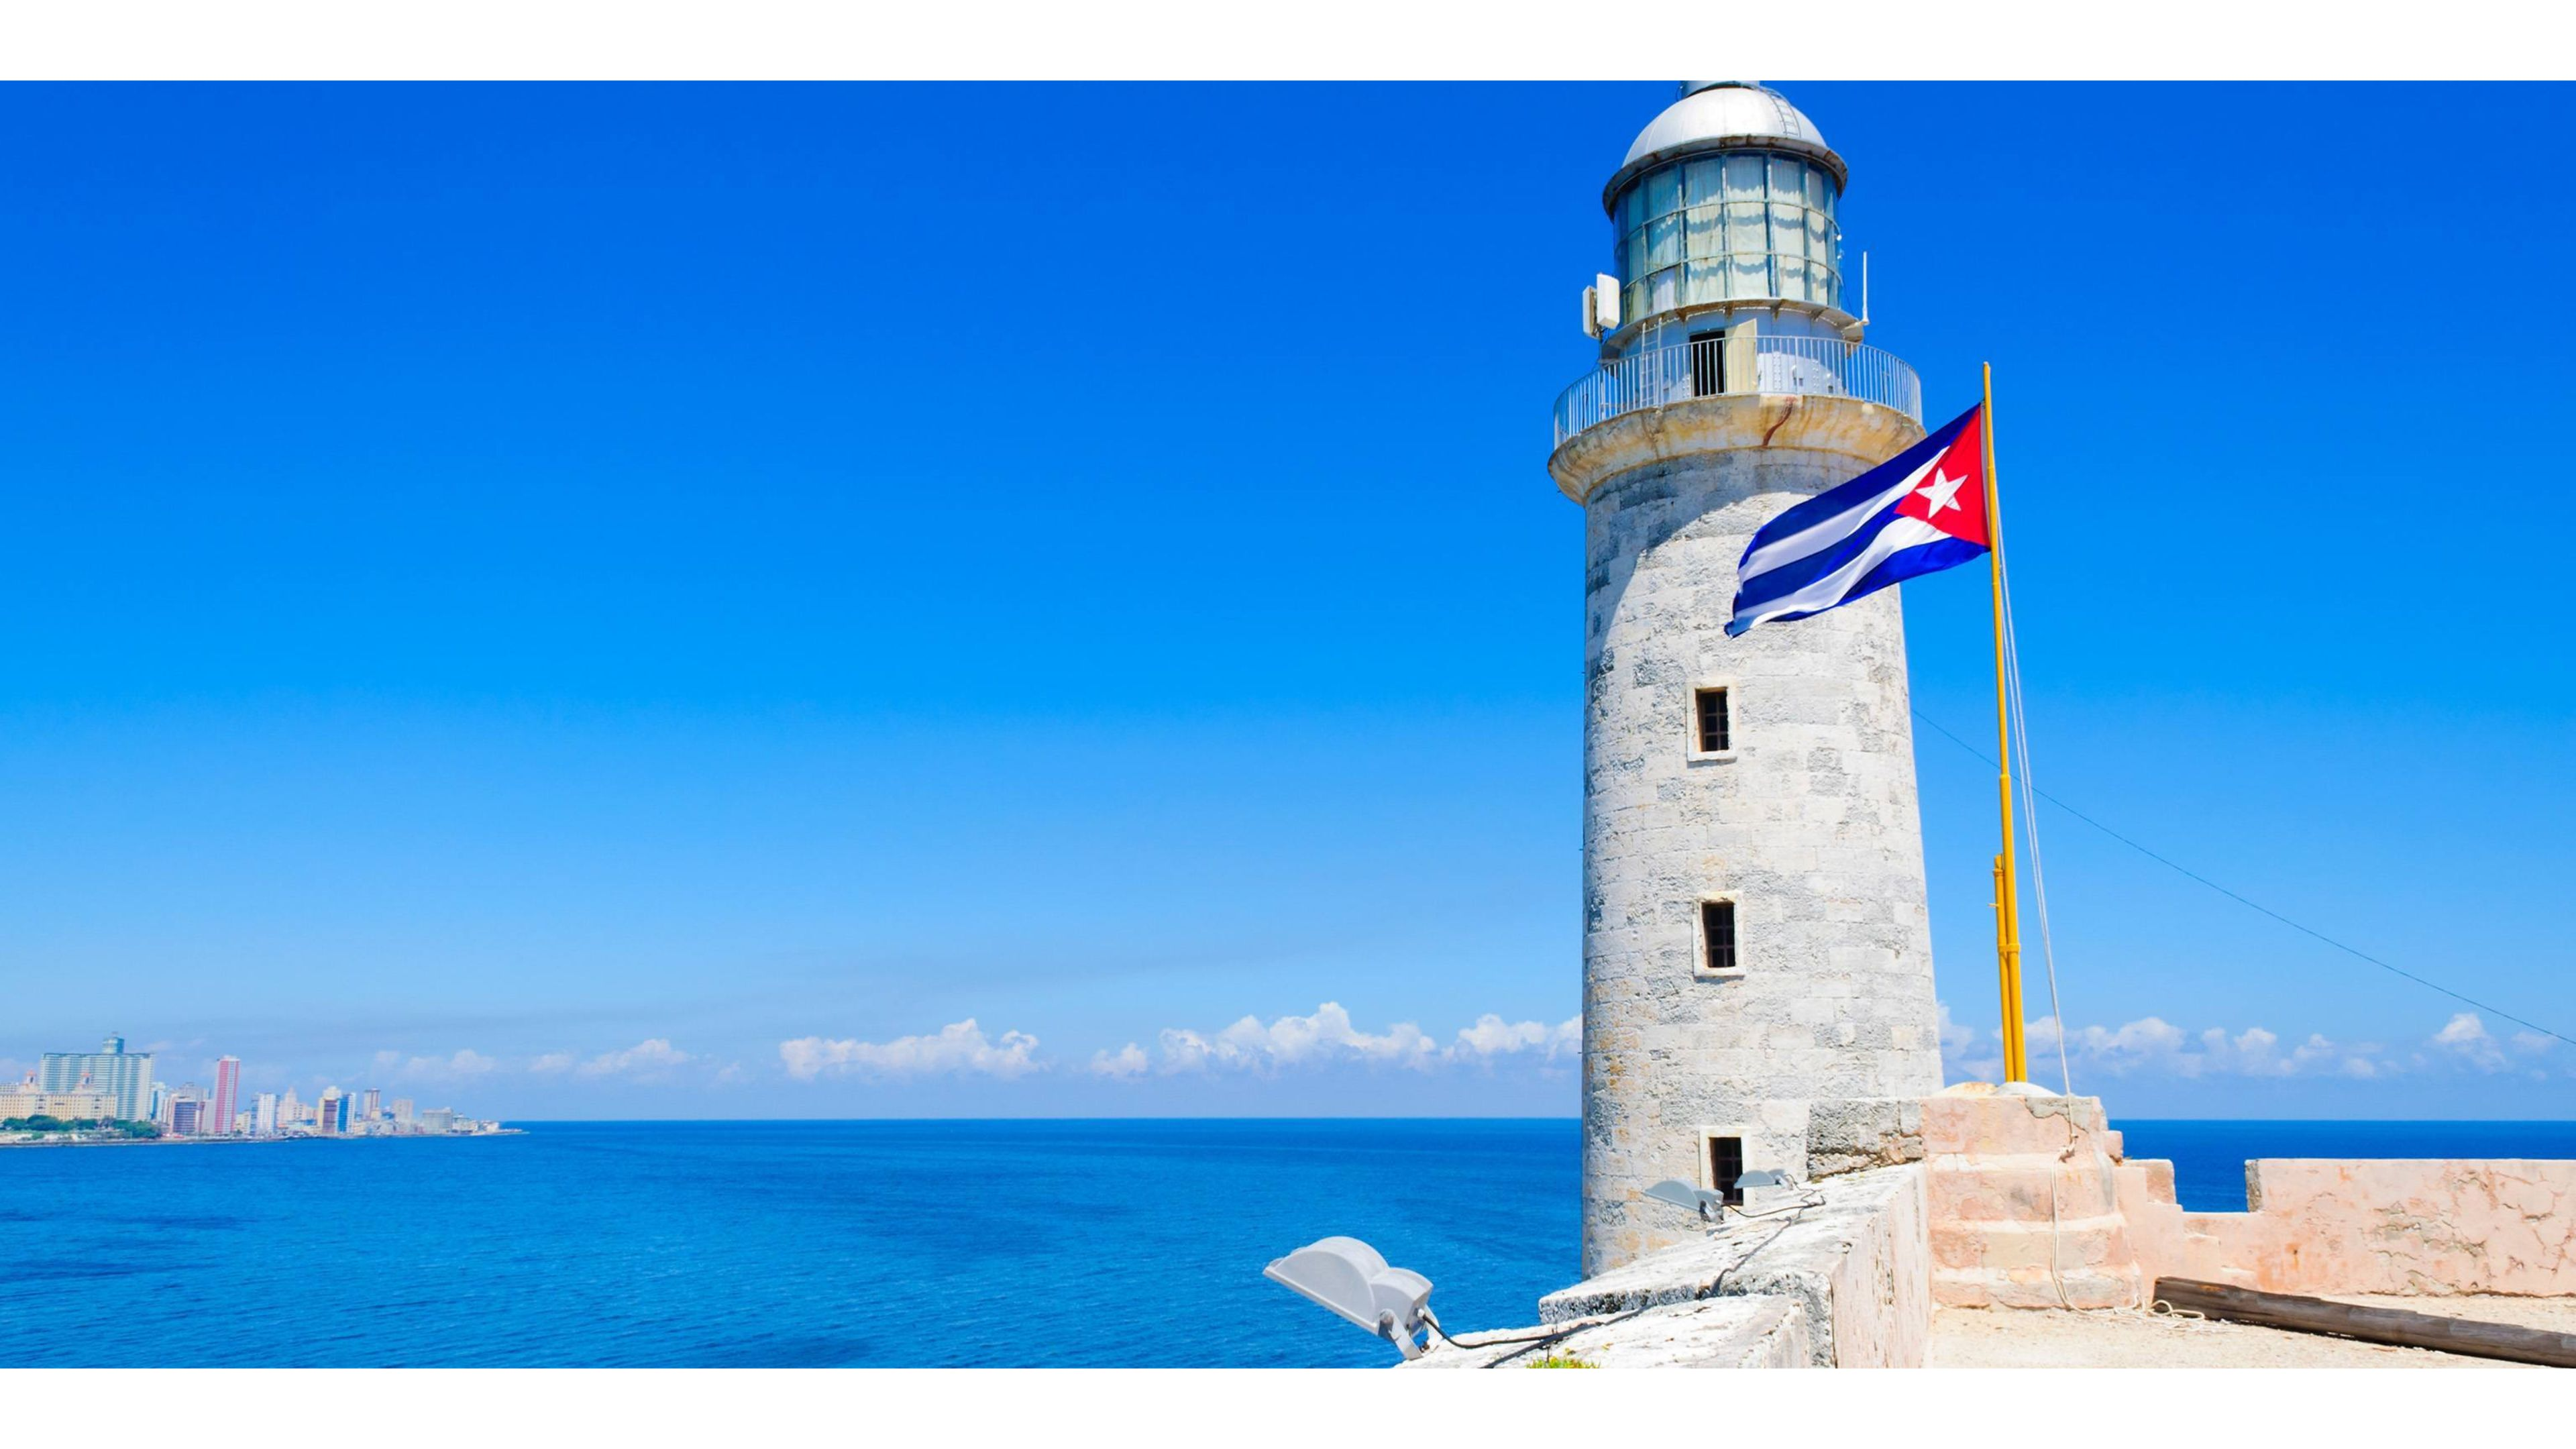 Download Cuba Background 3840x2160